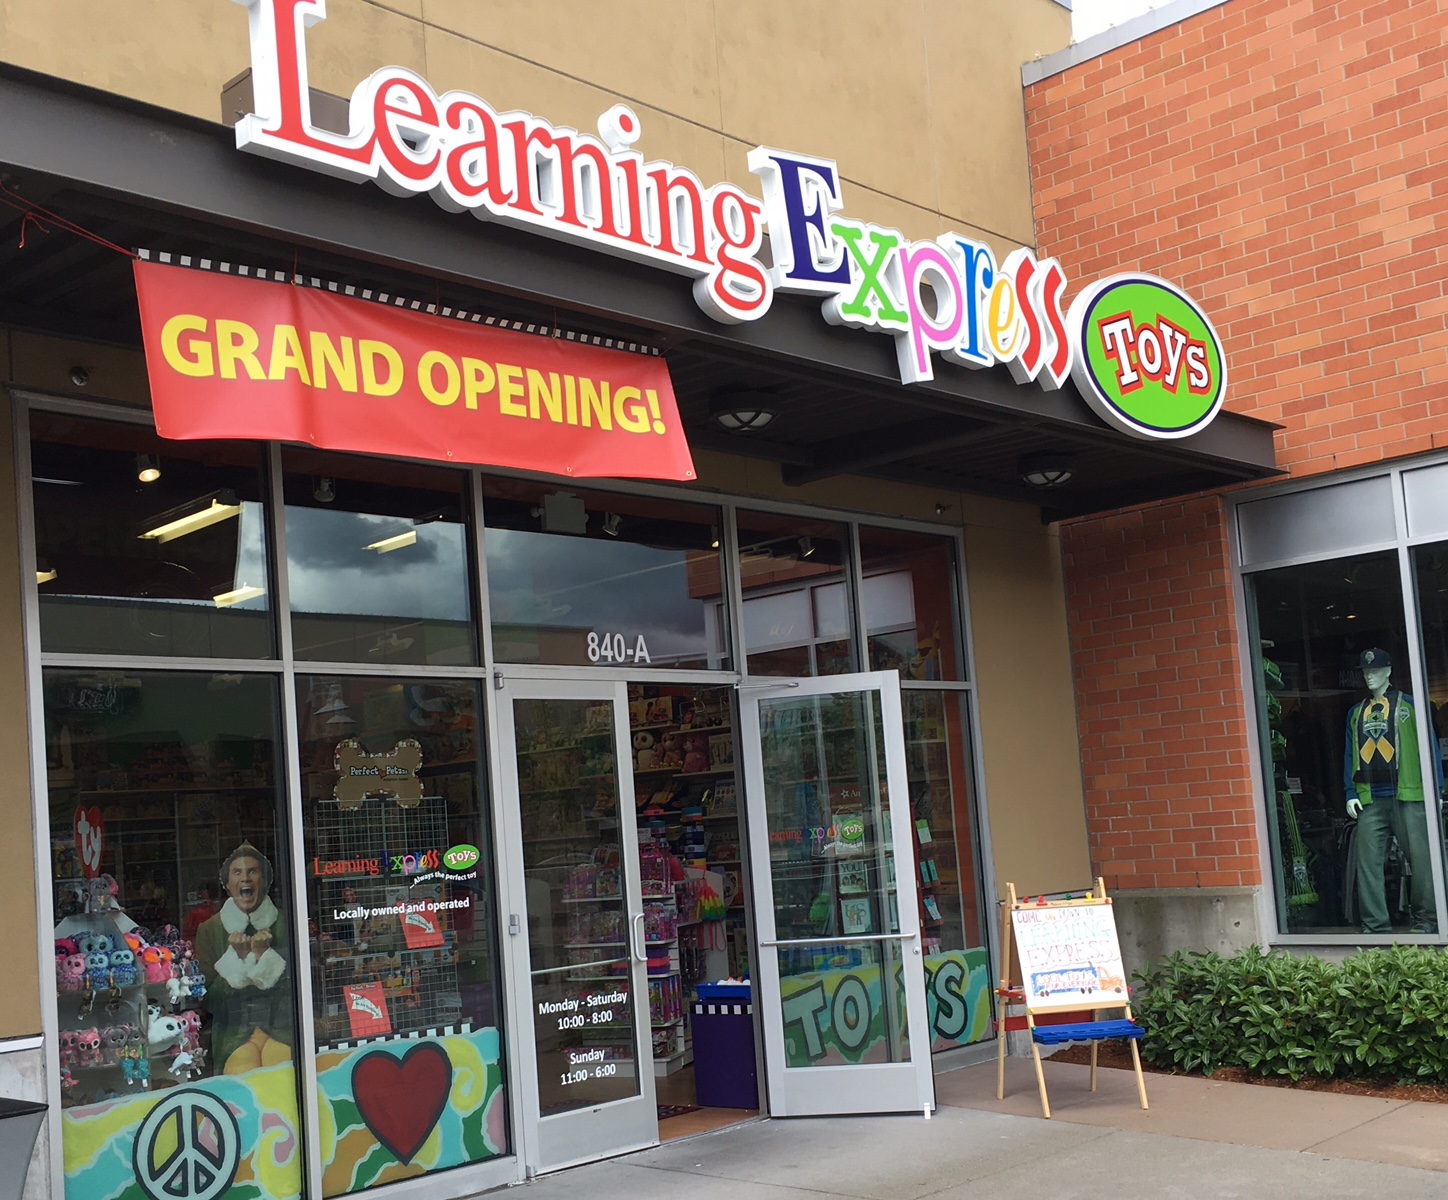 Learning Express Toys: Cool New Toy Store in Seattle